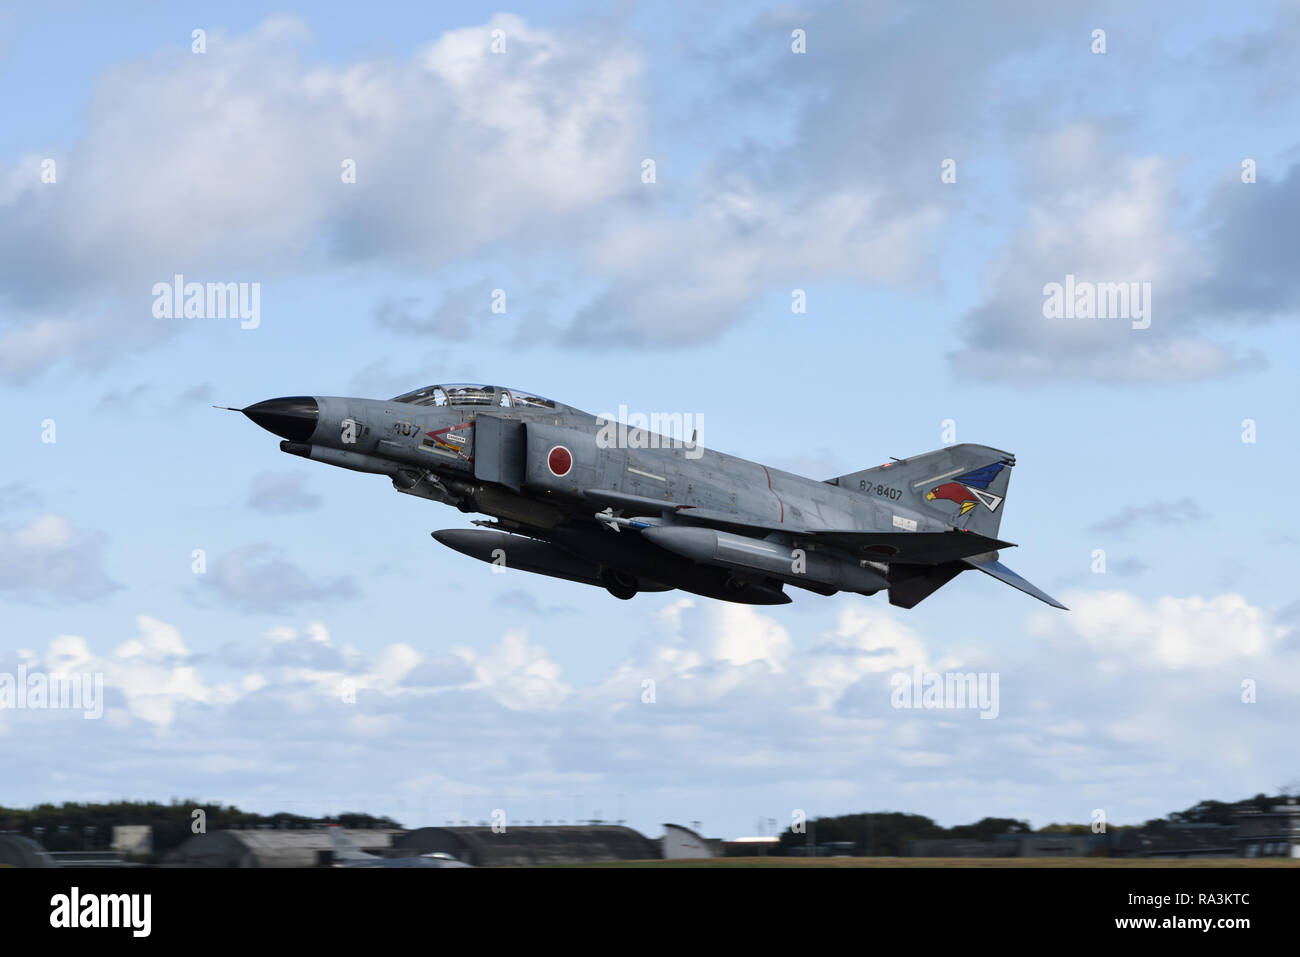 A Japanese Air Self-Defense Force RF-4EJ Phantom II fighter takes off during training exercise Keen Sword at Misawa Air Base November 1, 2018 in Misawa, Japan. - Stock Image